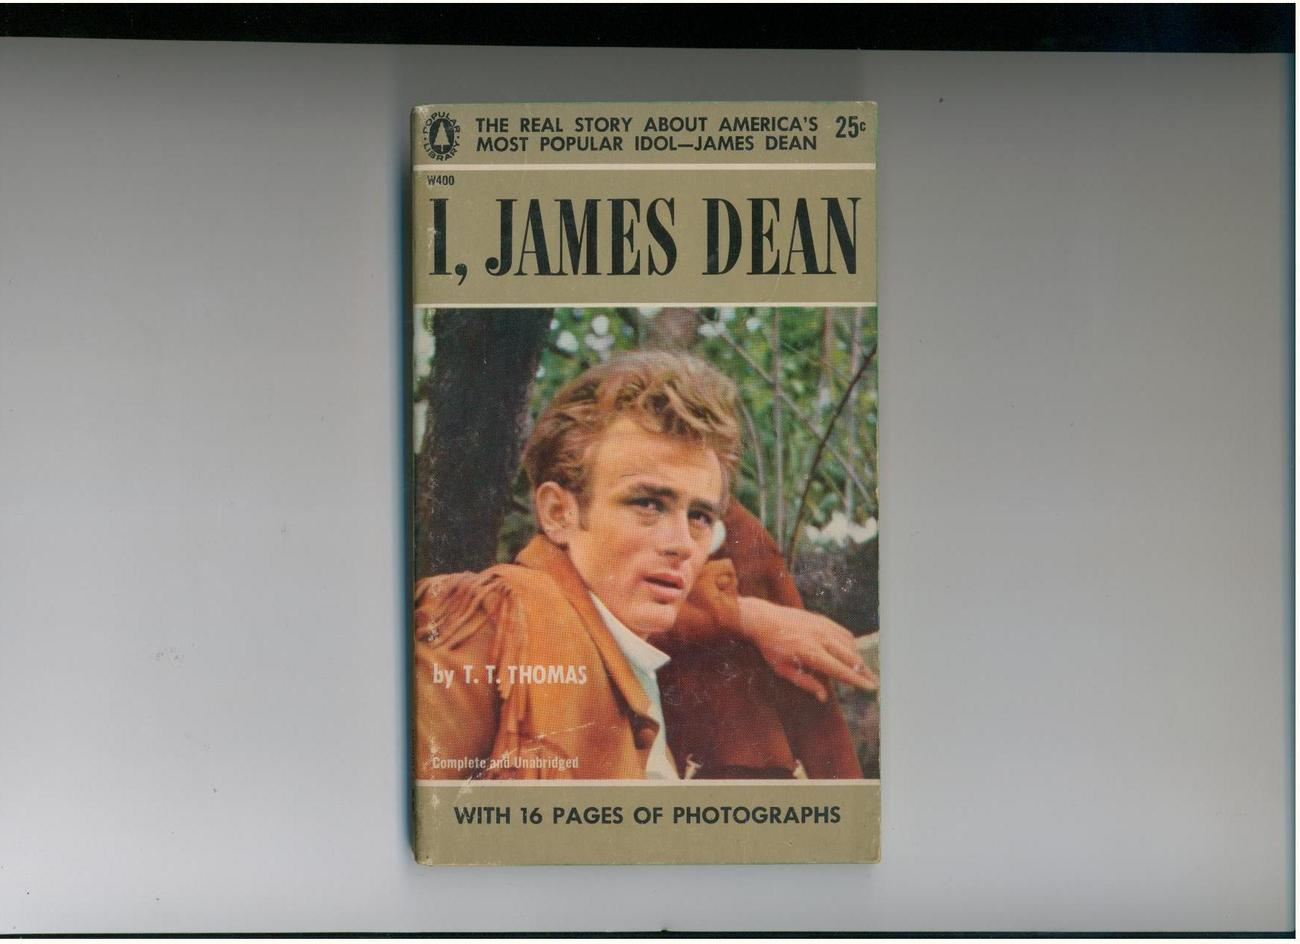 Primary image for Thomas - I, JAMES DEAN - 1957 - 16 pages of photos